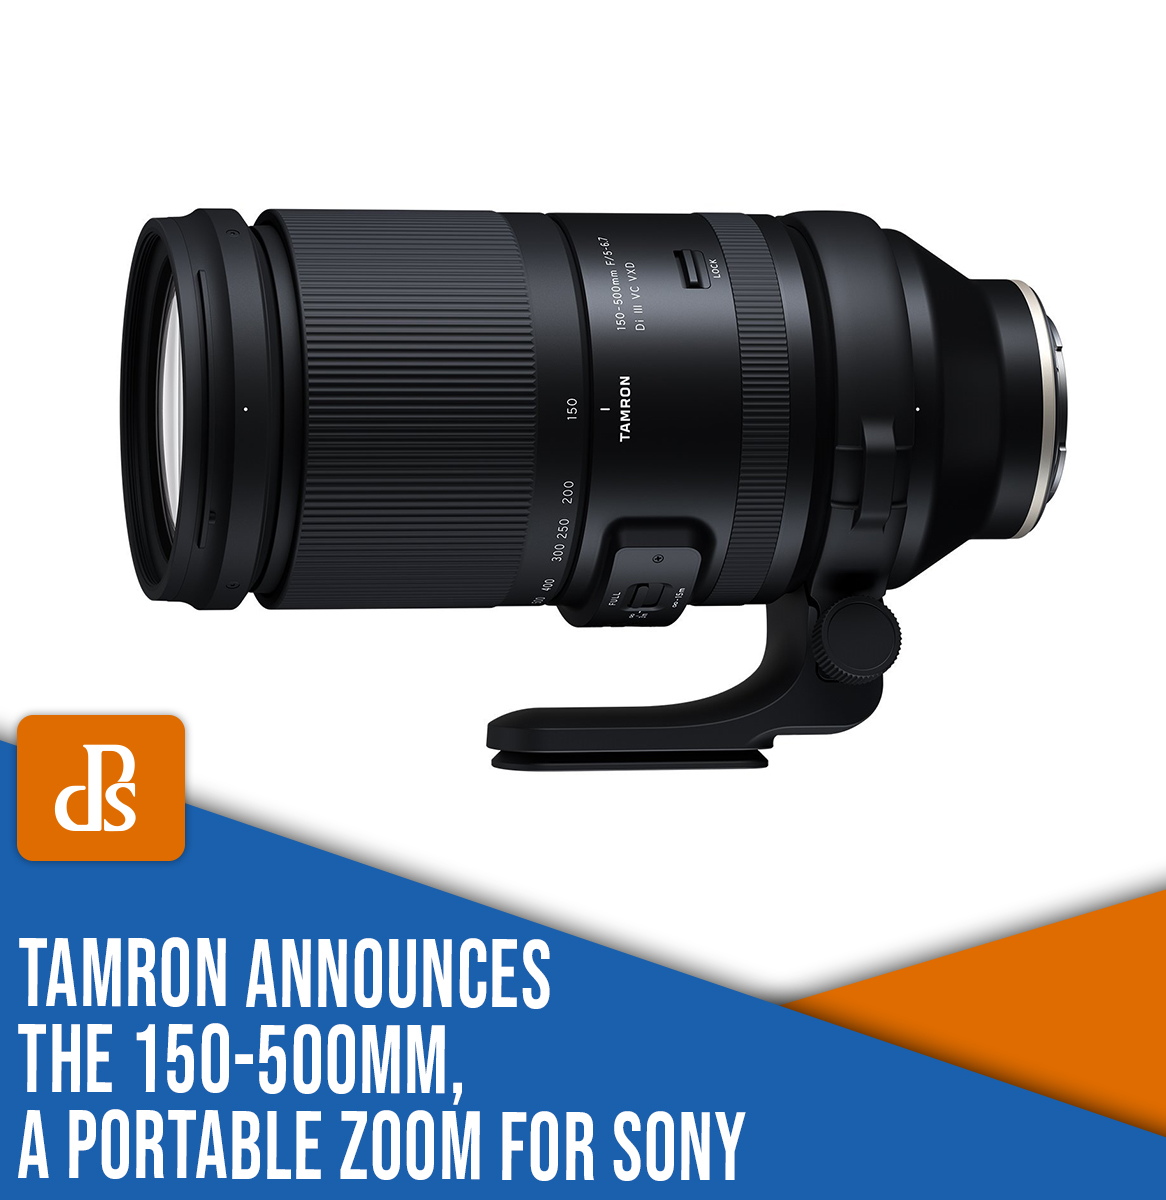 Tamron announces the 150-500mm, a portable zoom for Sony